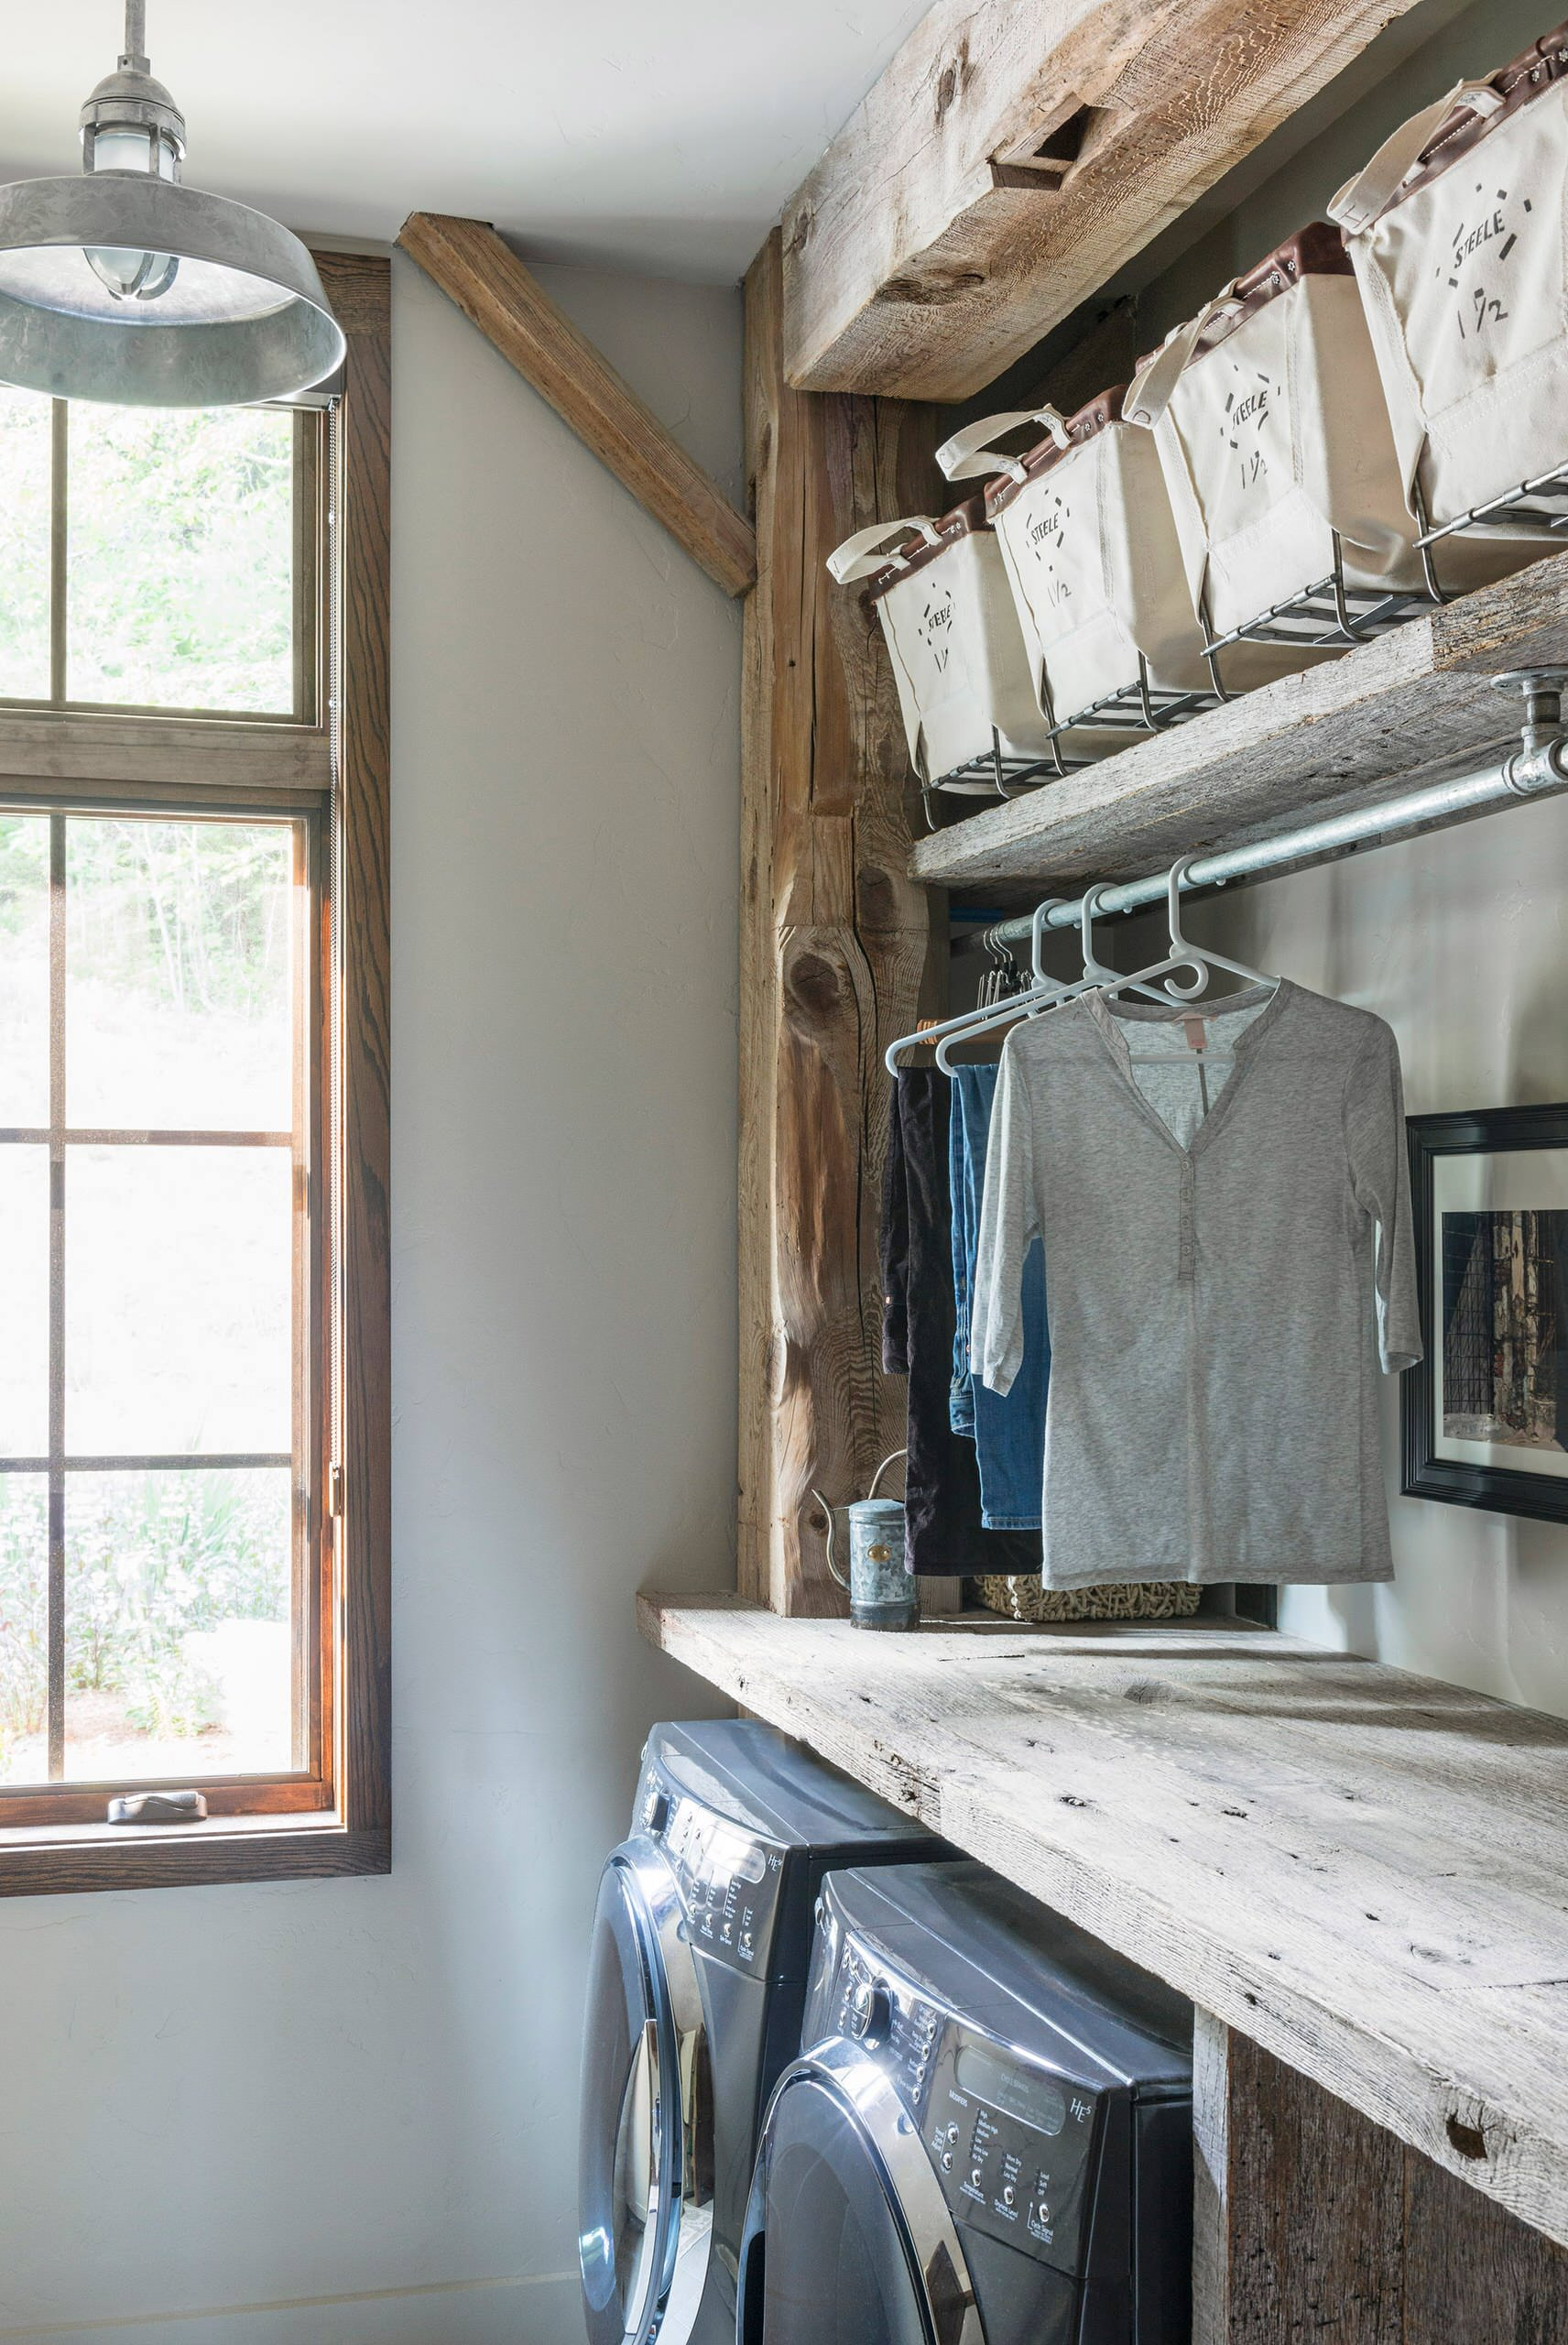 75 Beautiful Rustic Laundry Room Pictures Ideas February 2021 Houzz